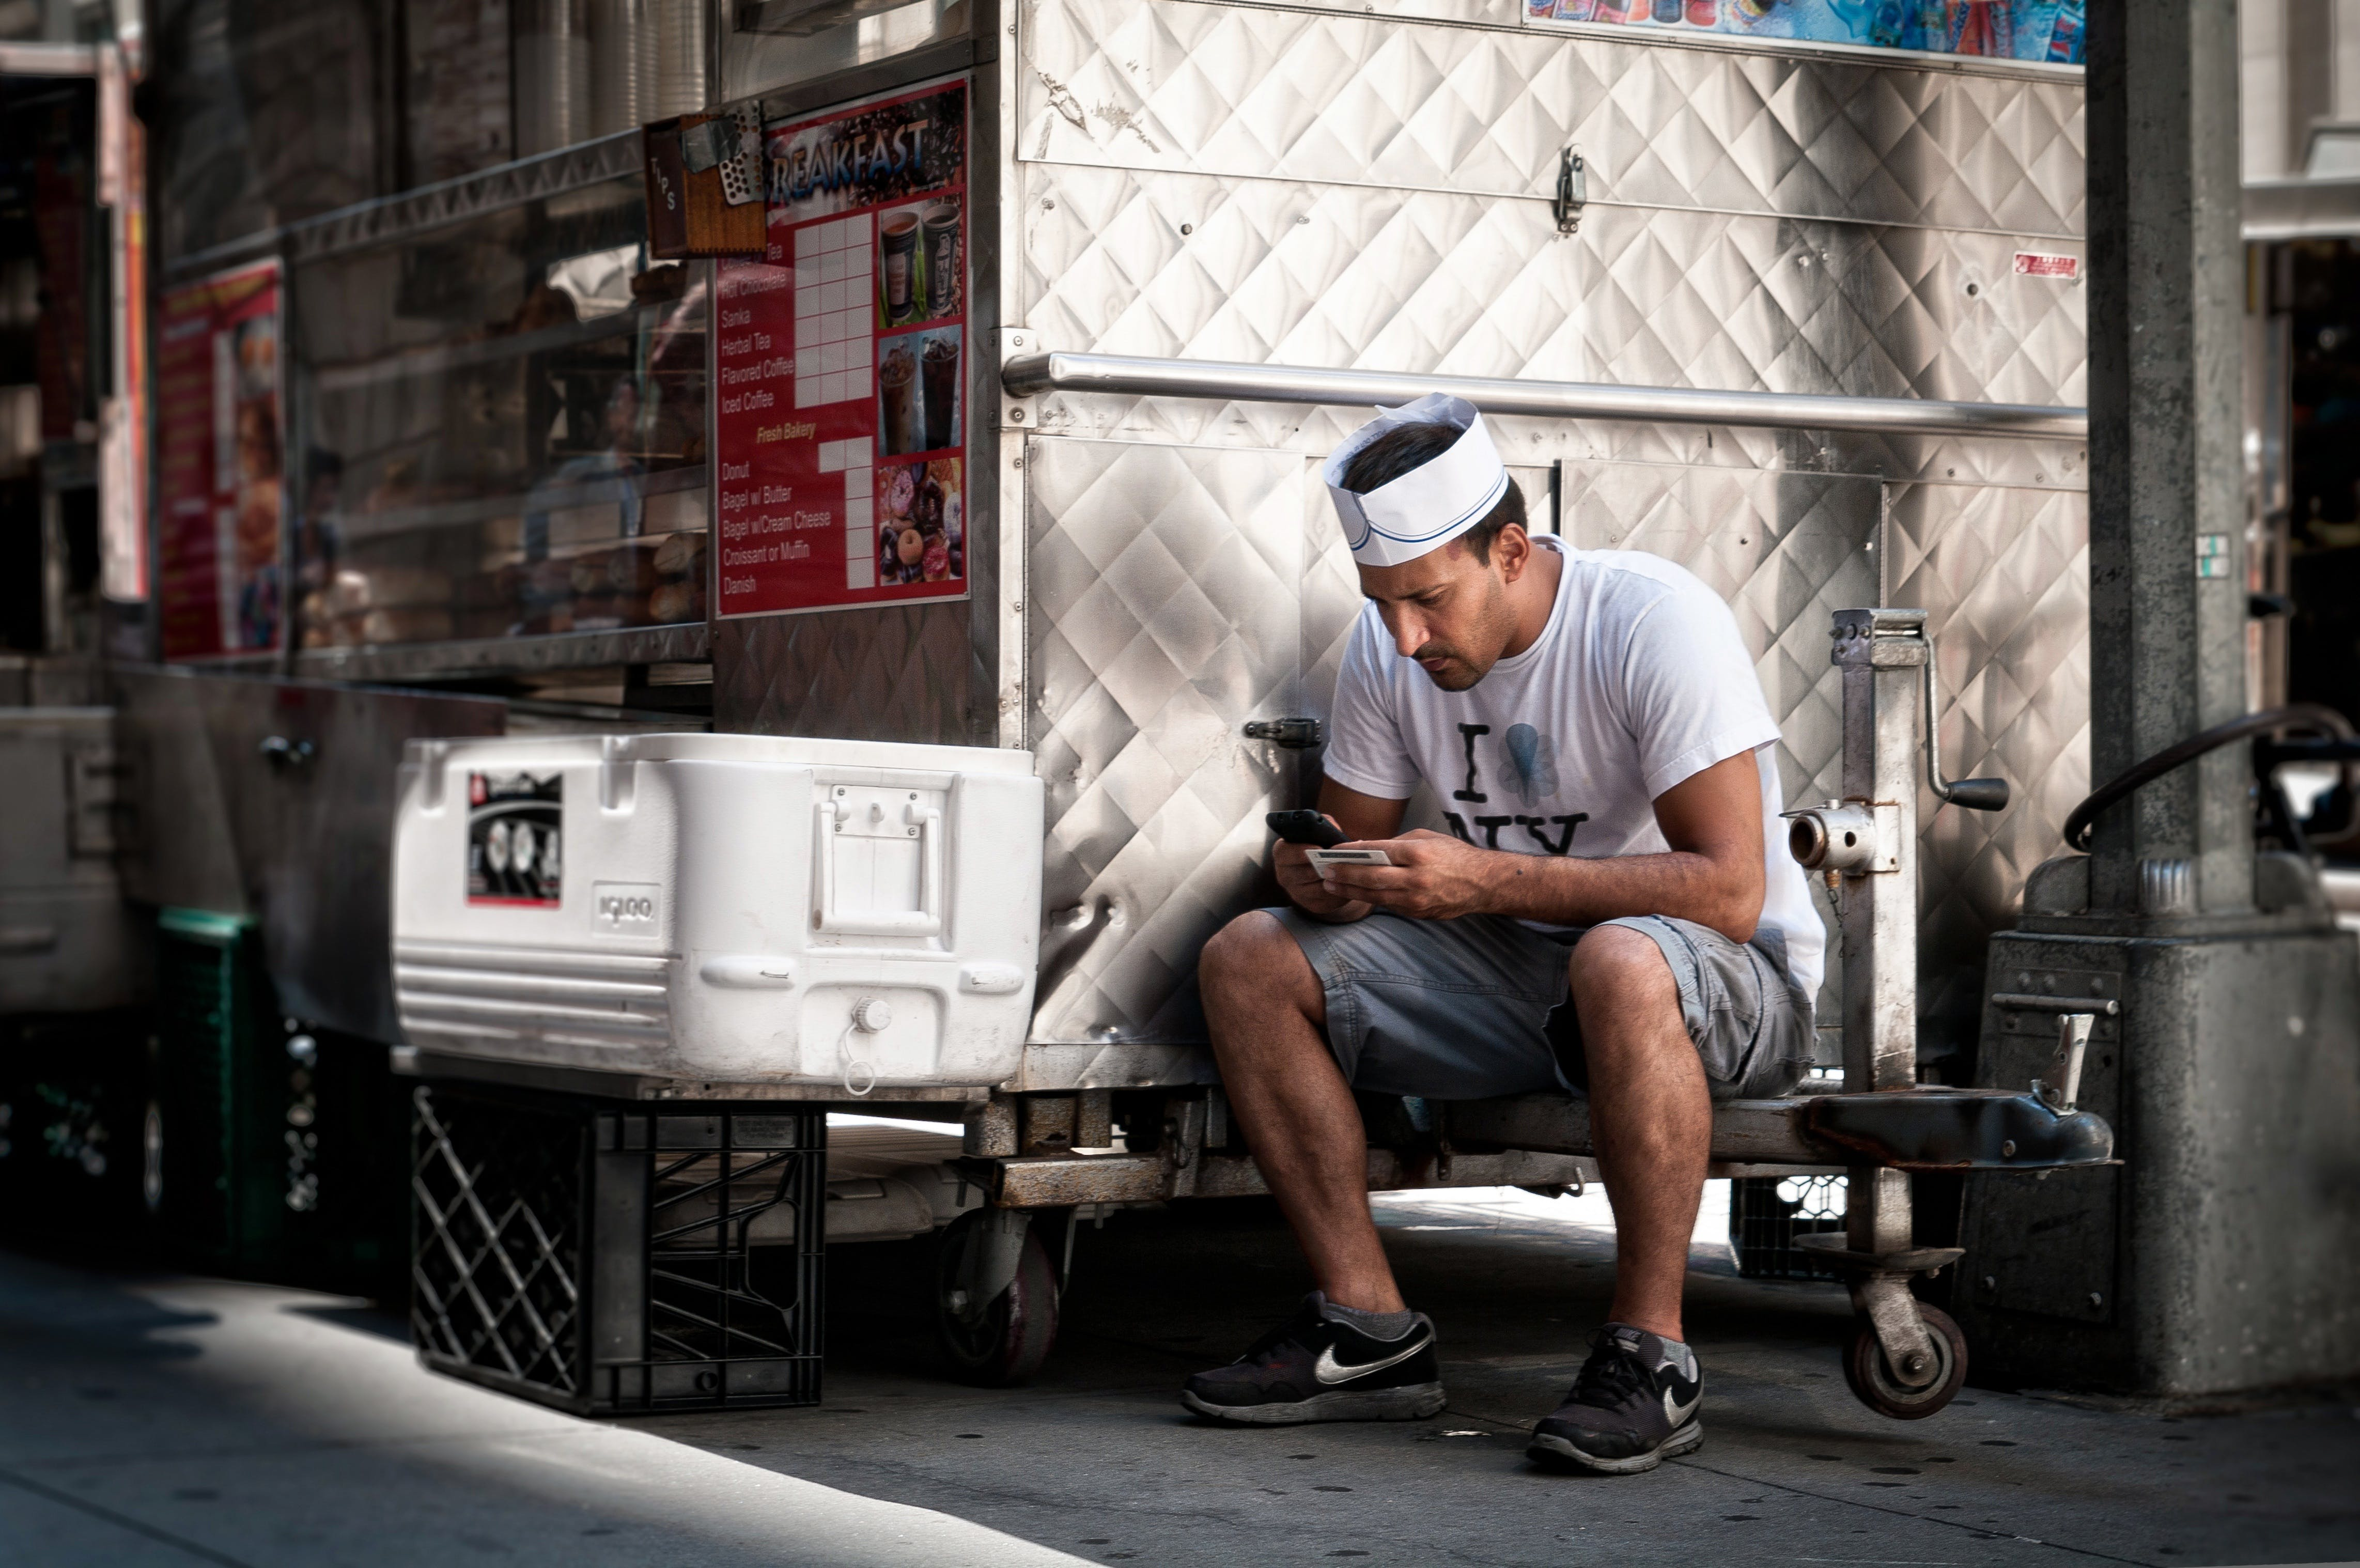 Man Sitting While Using Smartphone